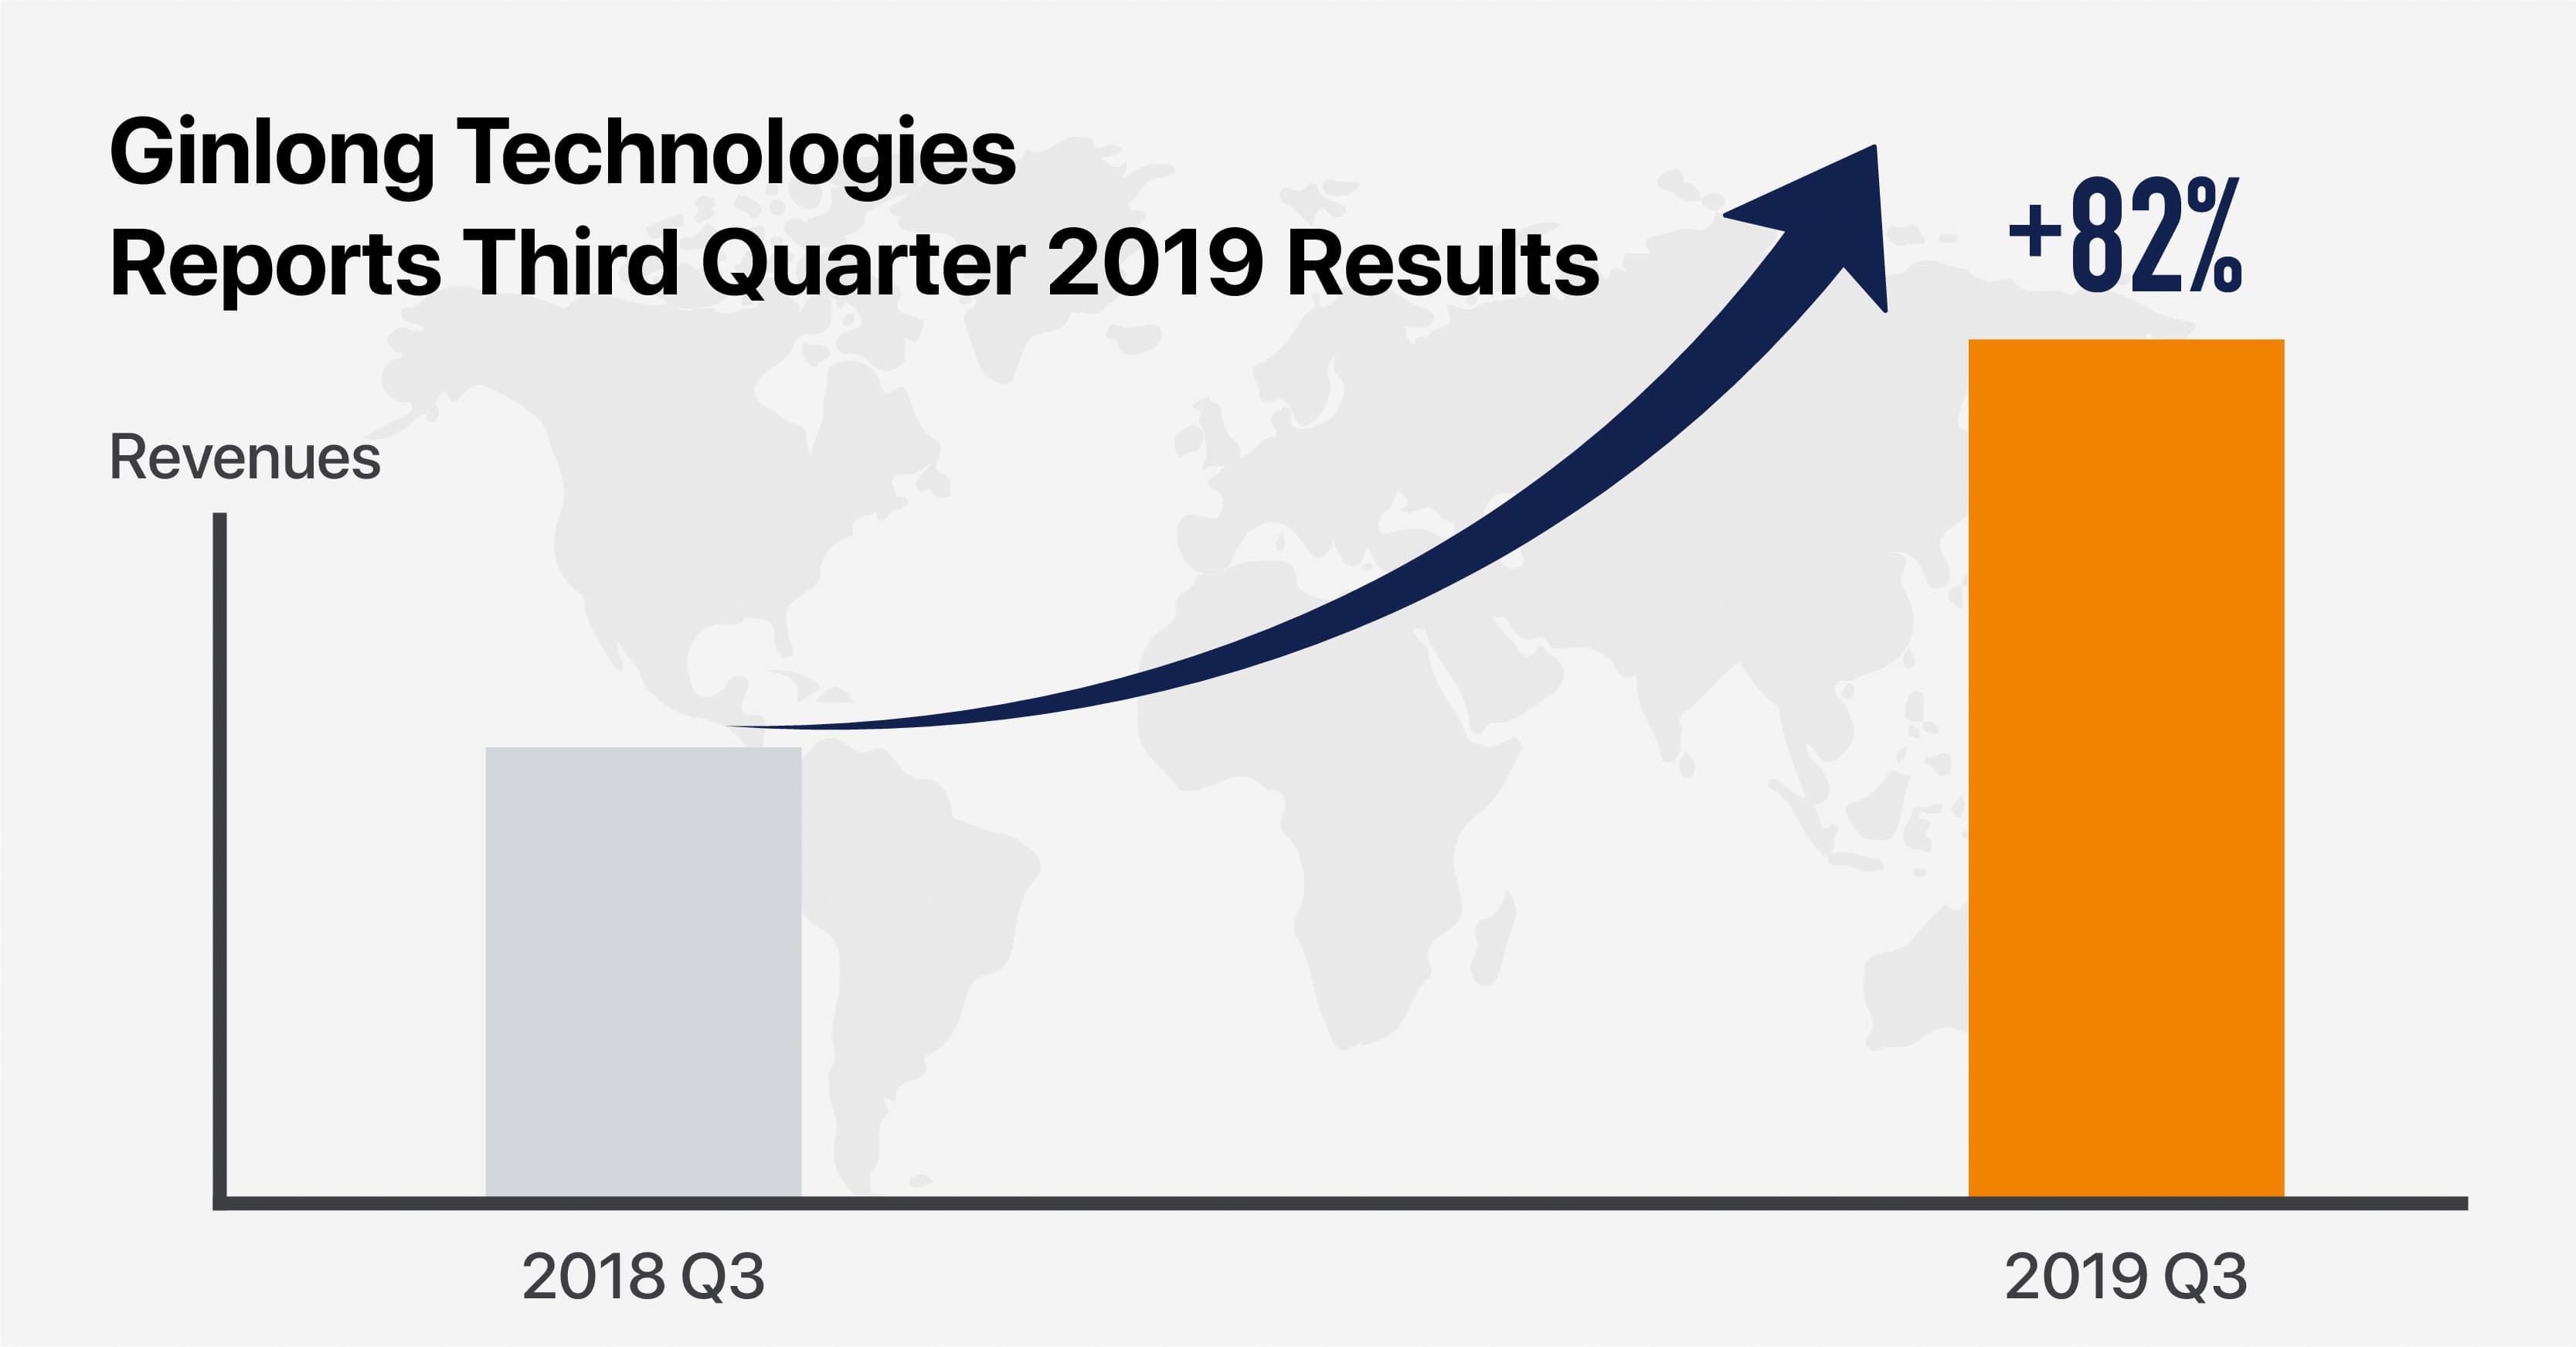 Ginlong Technologies Reports Third Quarter 2019 Results